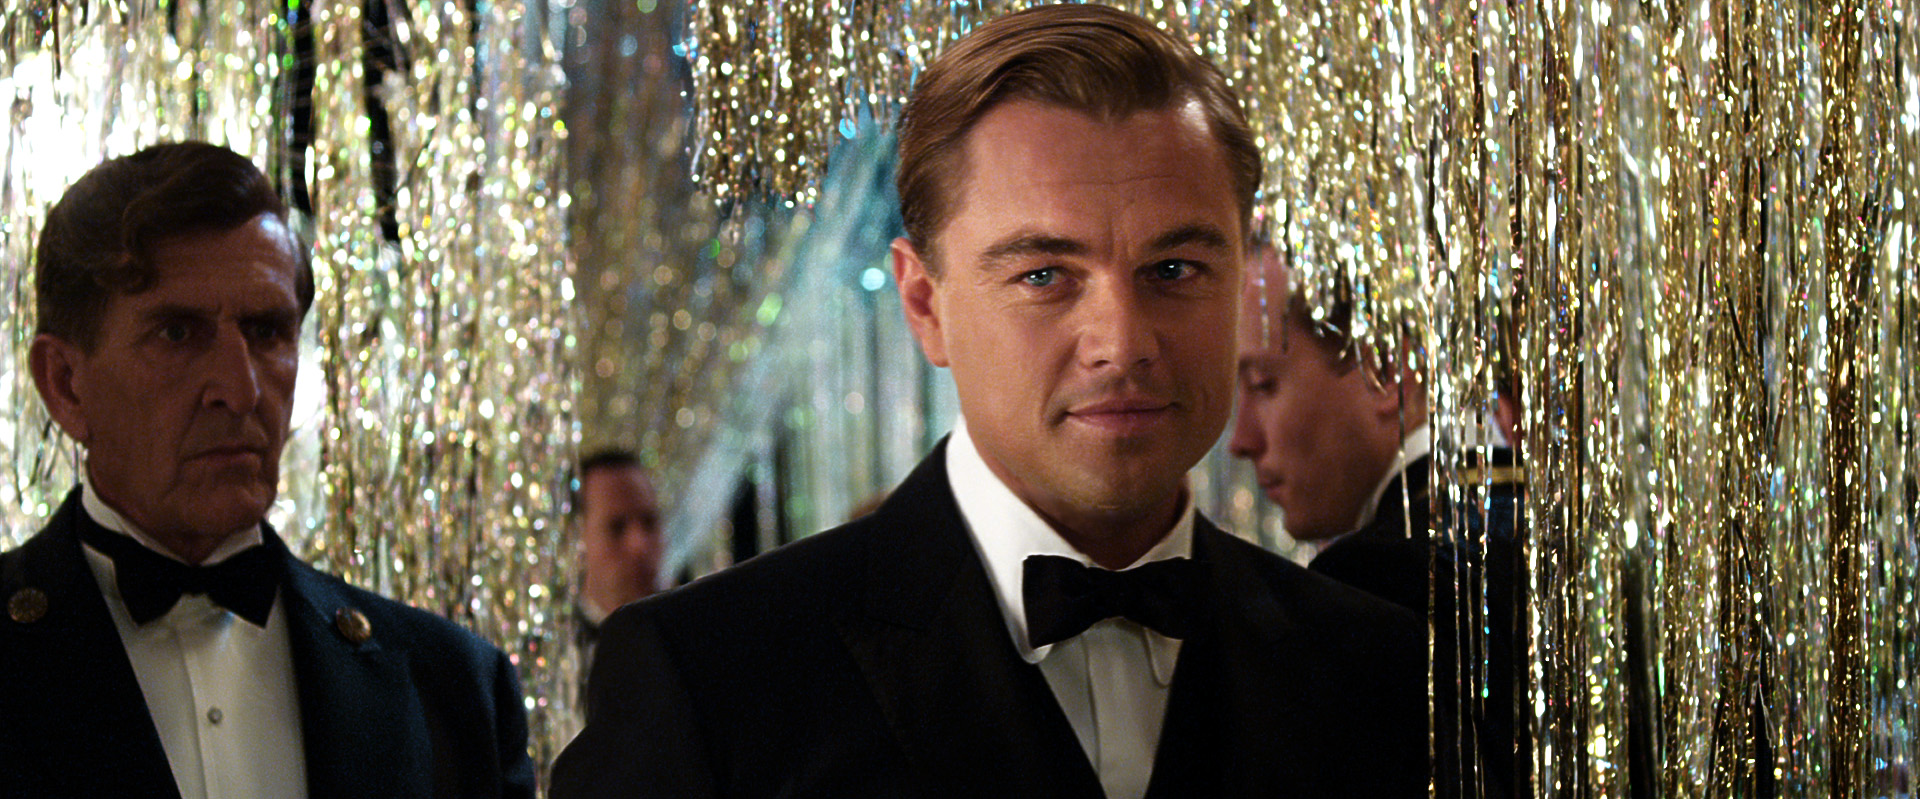 Jays background and his downfall in the great gatsby